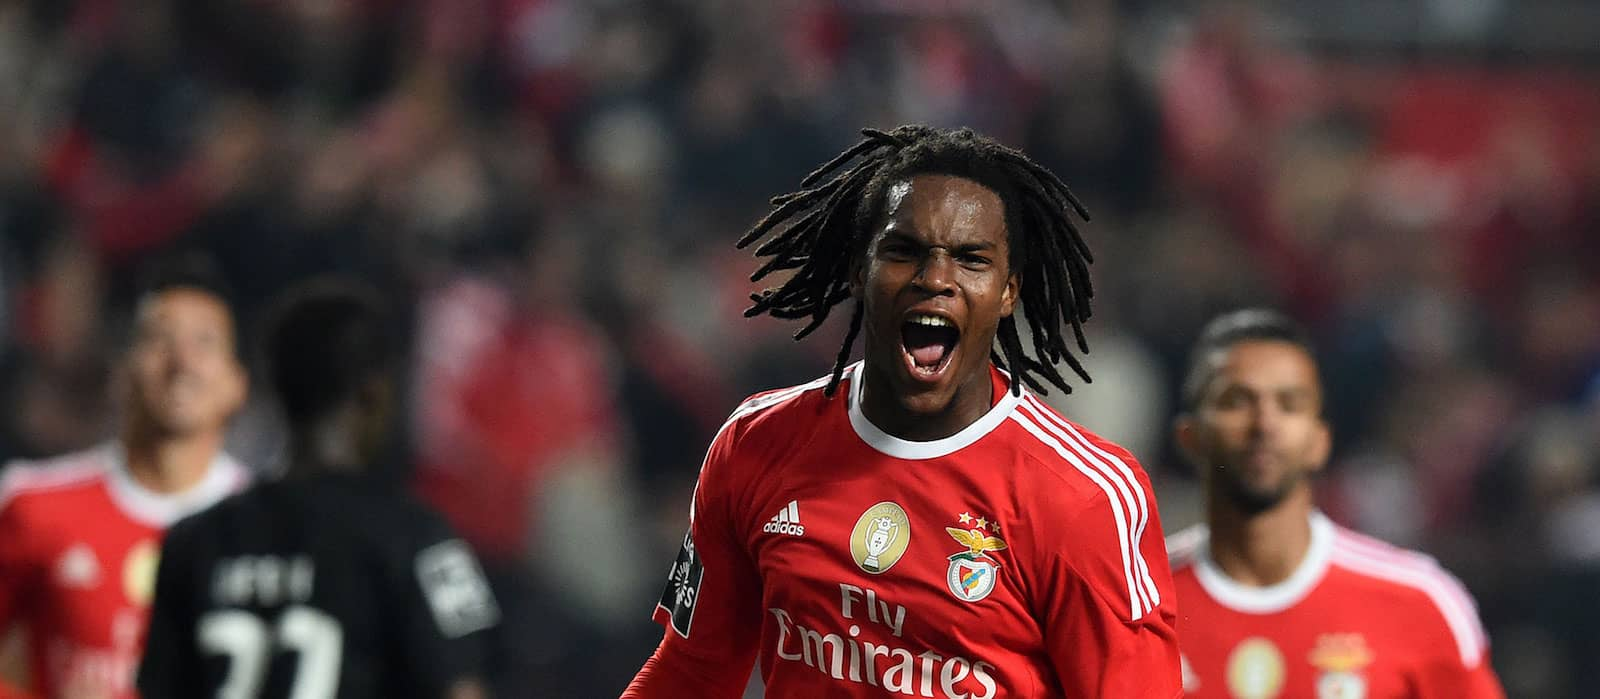 AC Milan will beat Manchester United to the signing of Renato Sanches – report